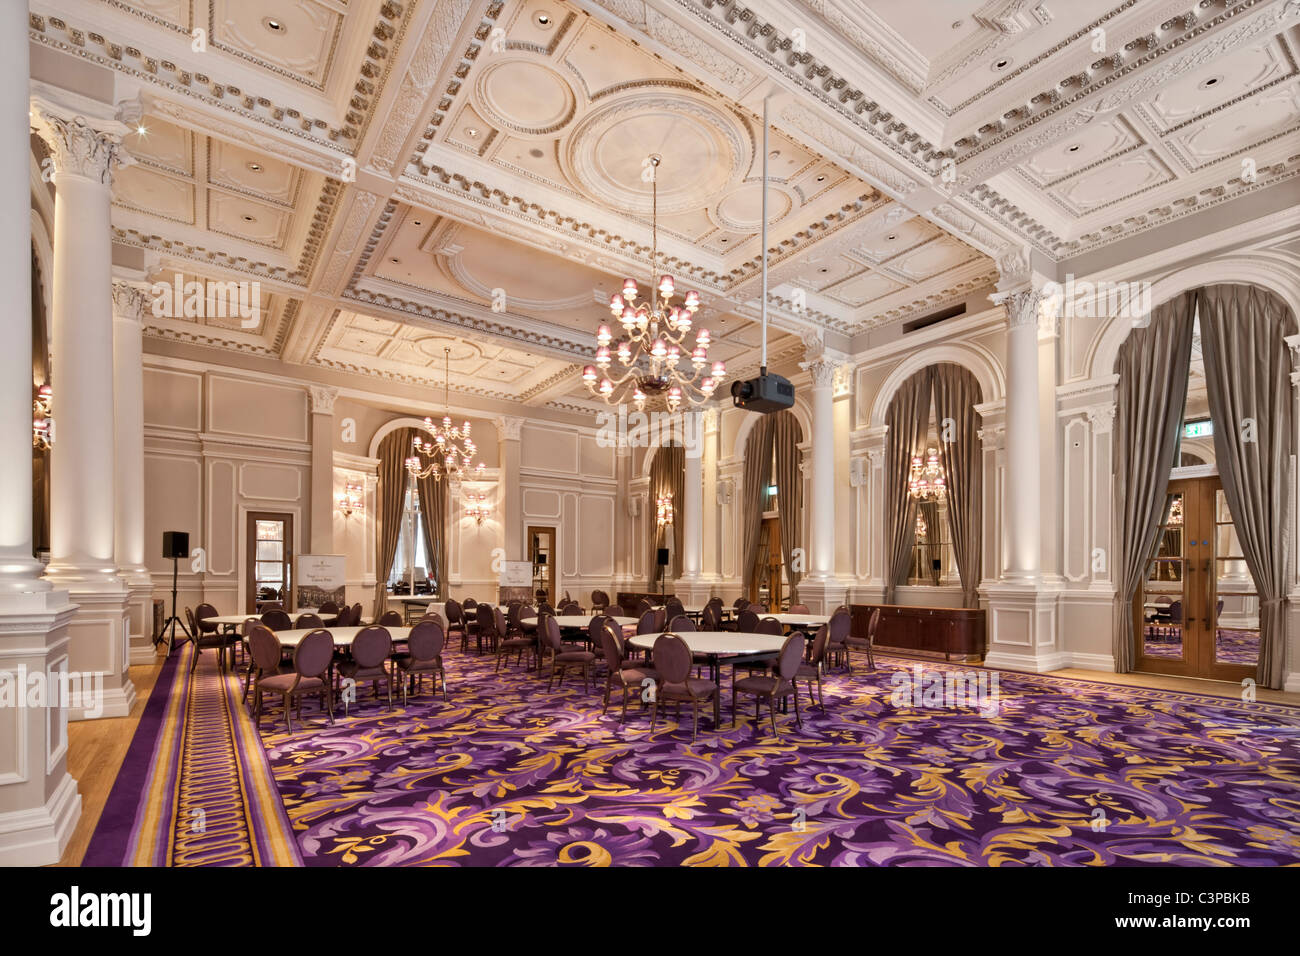 Ballroom with chandeliers stock photos ballroom with chandeliers the corinthia hotel in whitehall london opened in april 2011 stock image arubaitofo Choice Image